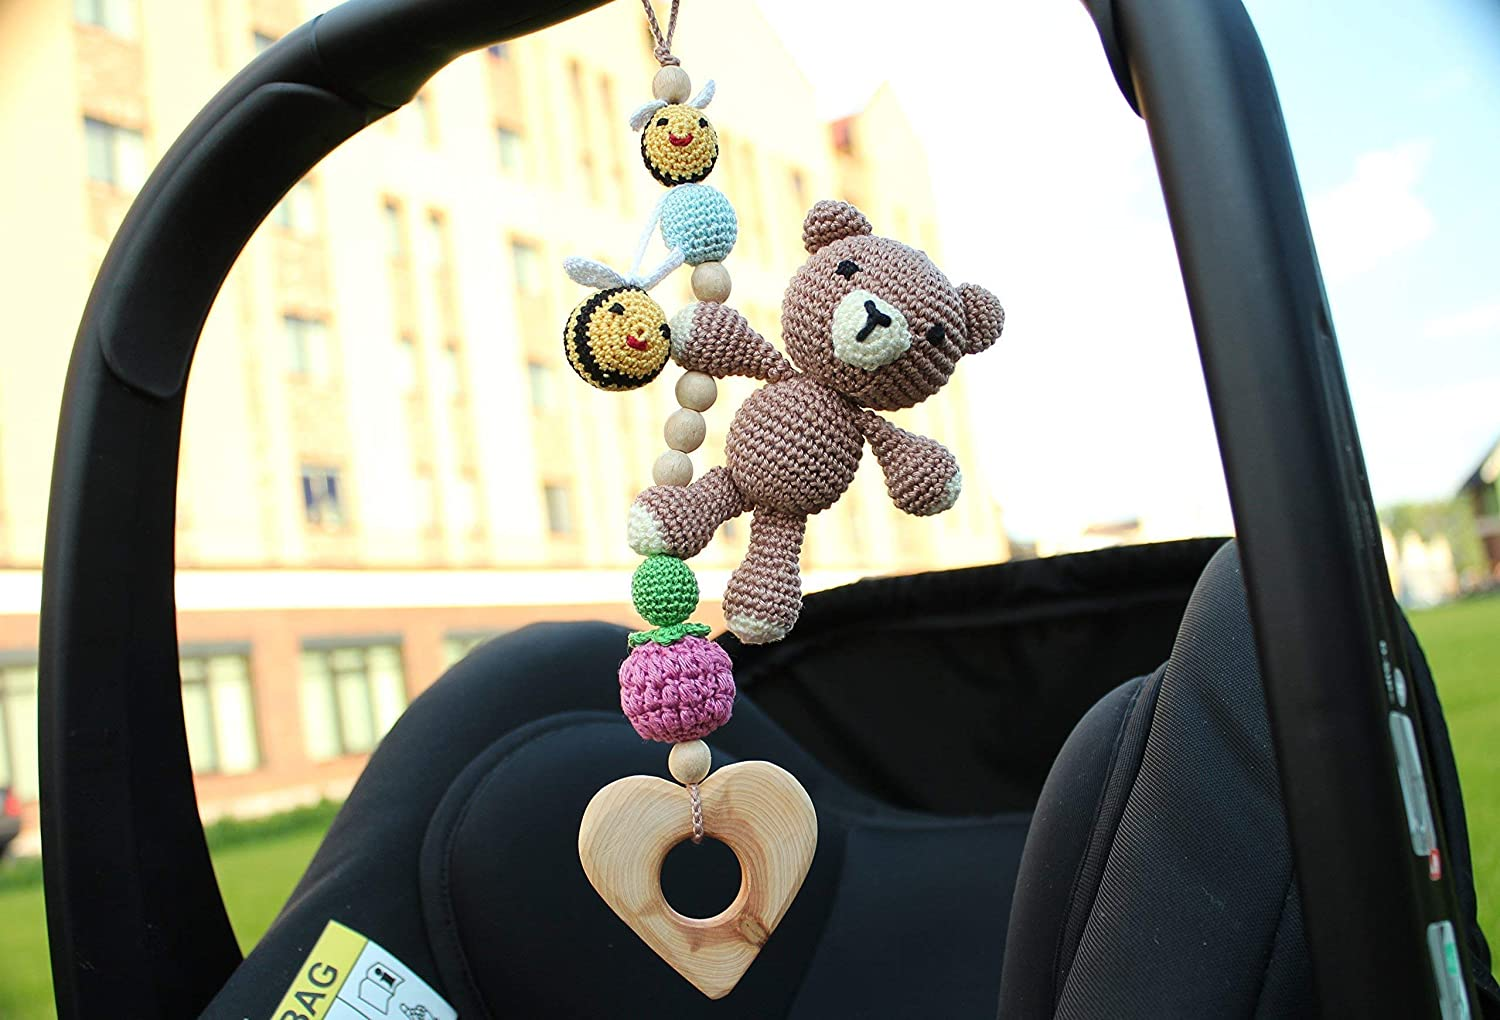 Bear & bees hanging mobile, Car seat mobile, Pram mobile, stroller mobile, baby gym mobile, baby rattle, baby activity center mobile, gender neutral, woodland mobile, clip mobile